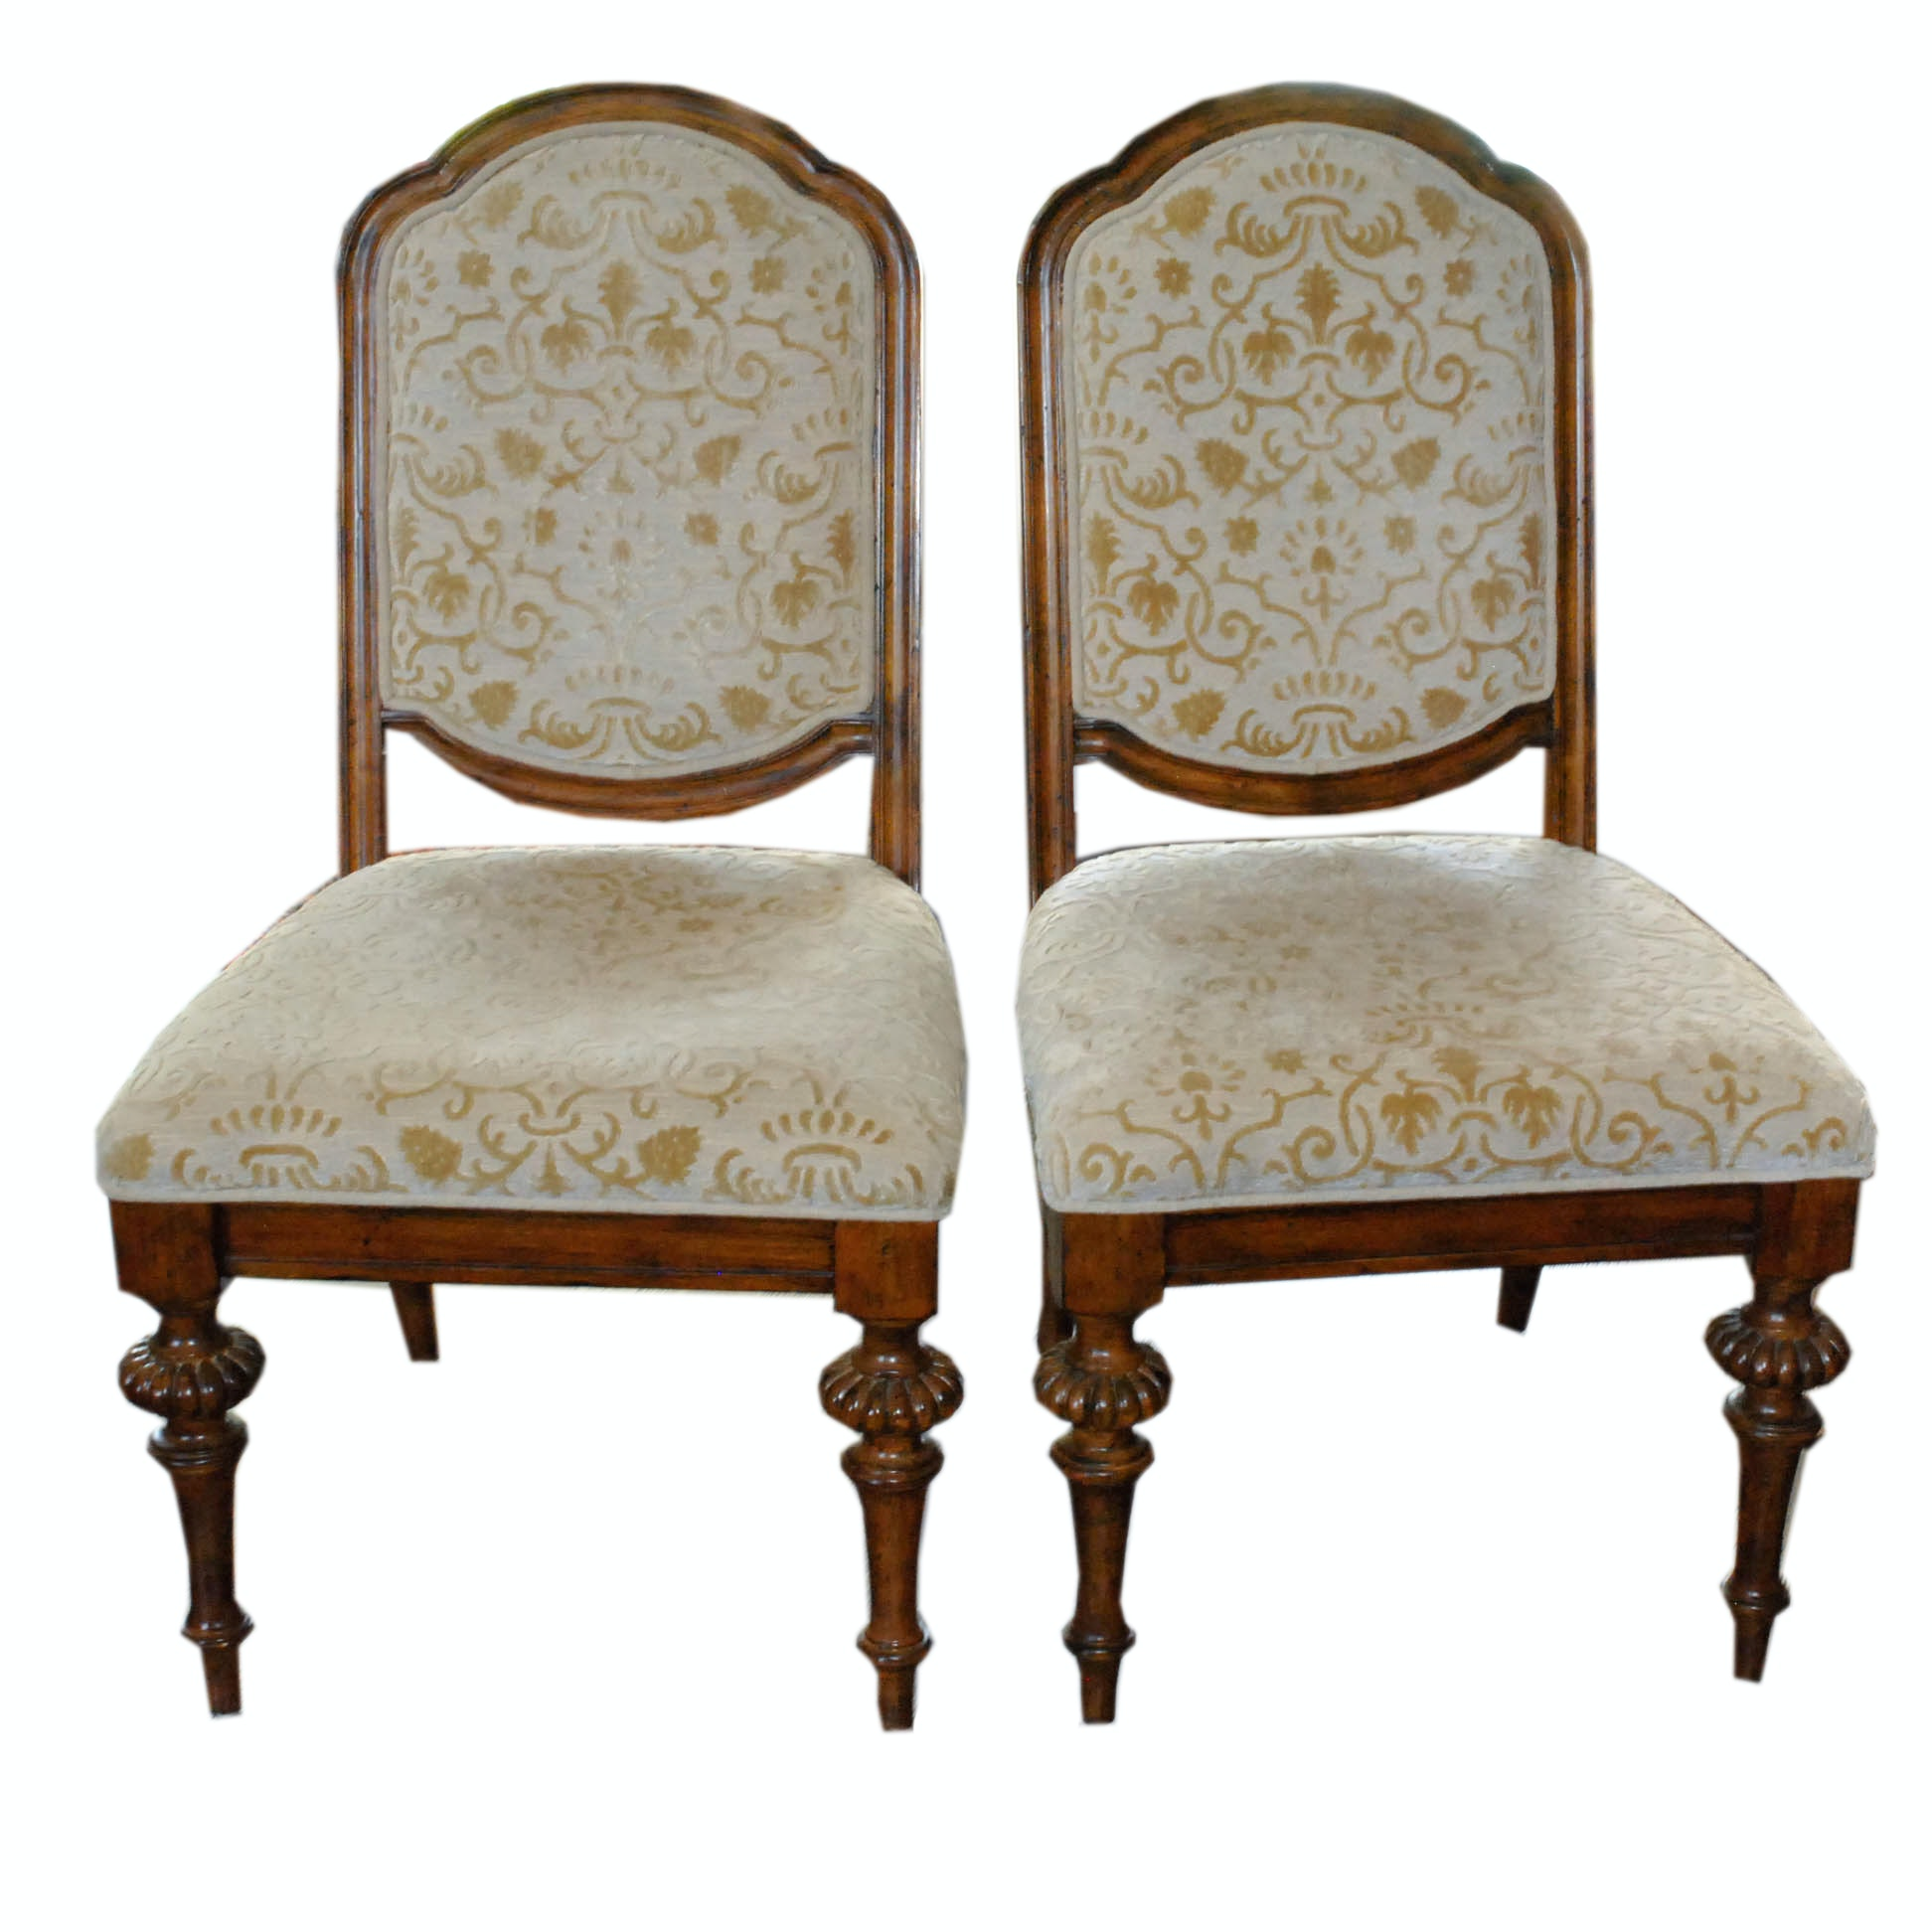 Cream and Gold Upholstered Louis XVI Style Side Chairs by Lane Furniture